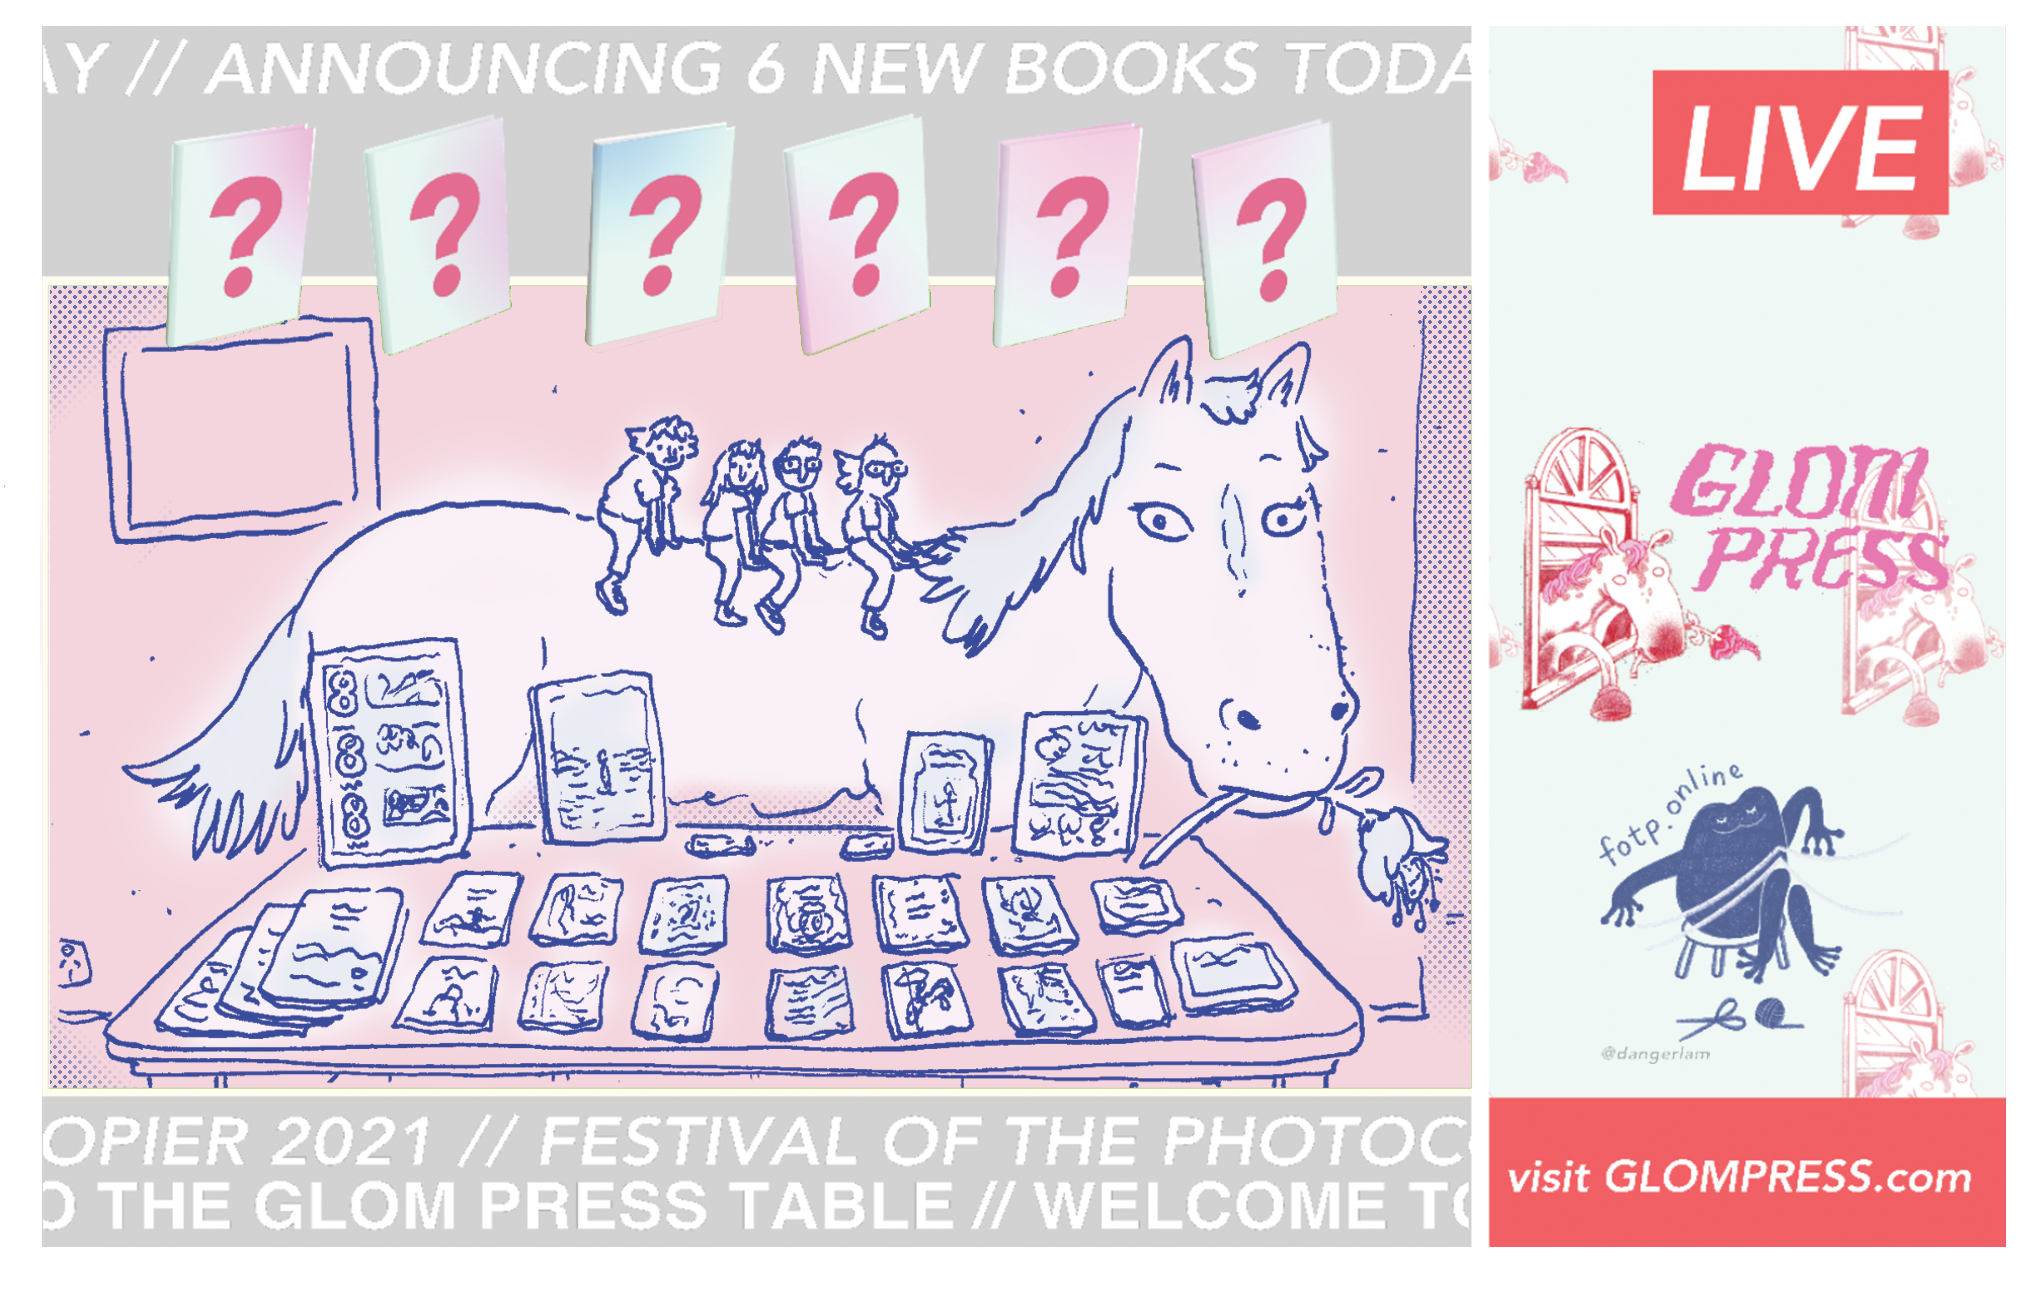 Digital illustration of zinesters sitting on a horse behind a zine table; text reads GLOM PRESS LIVE.